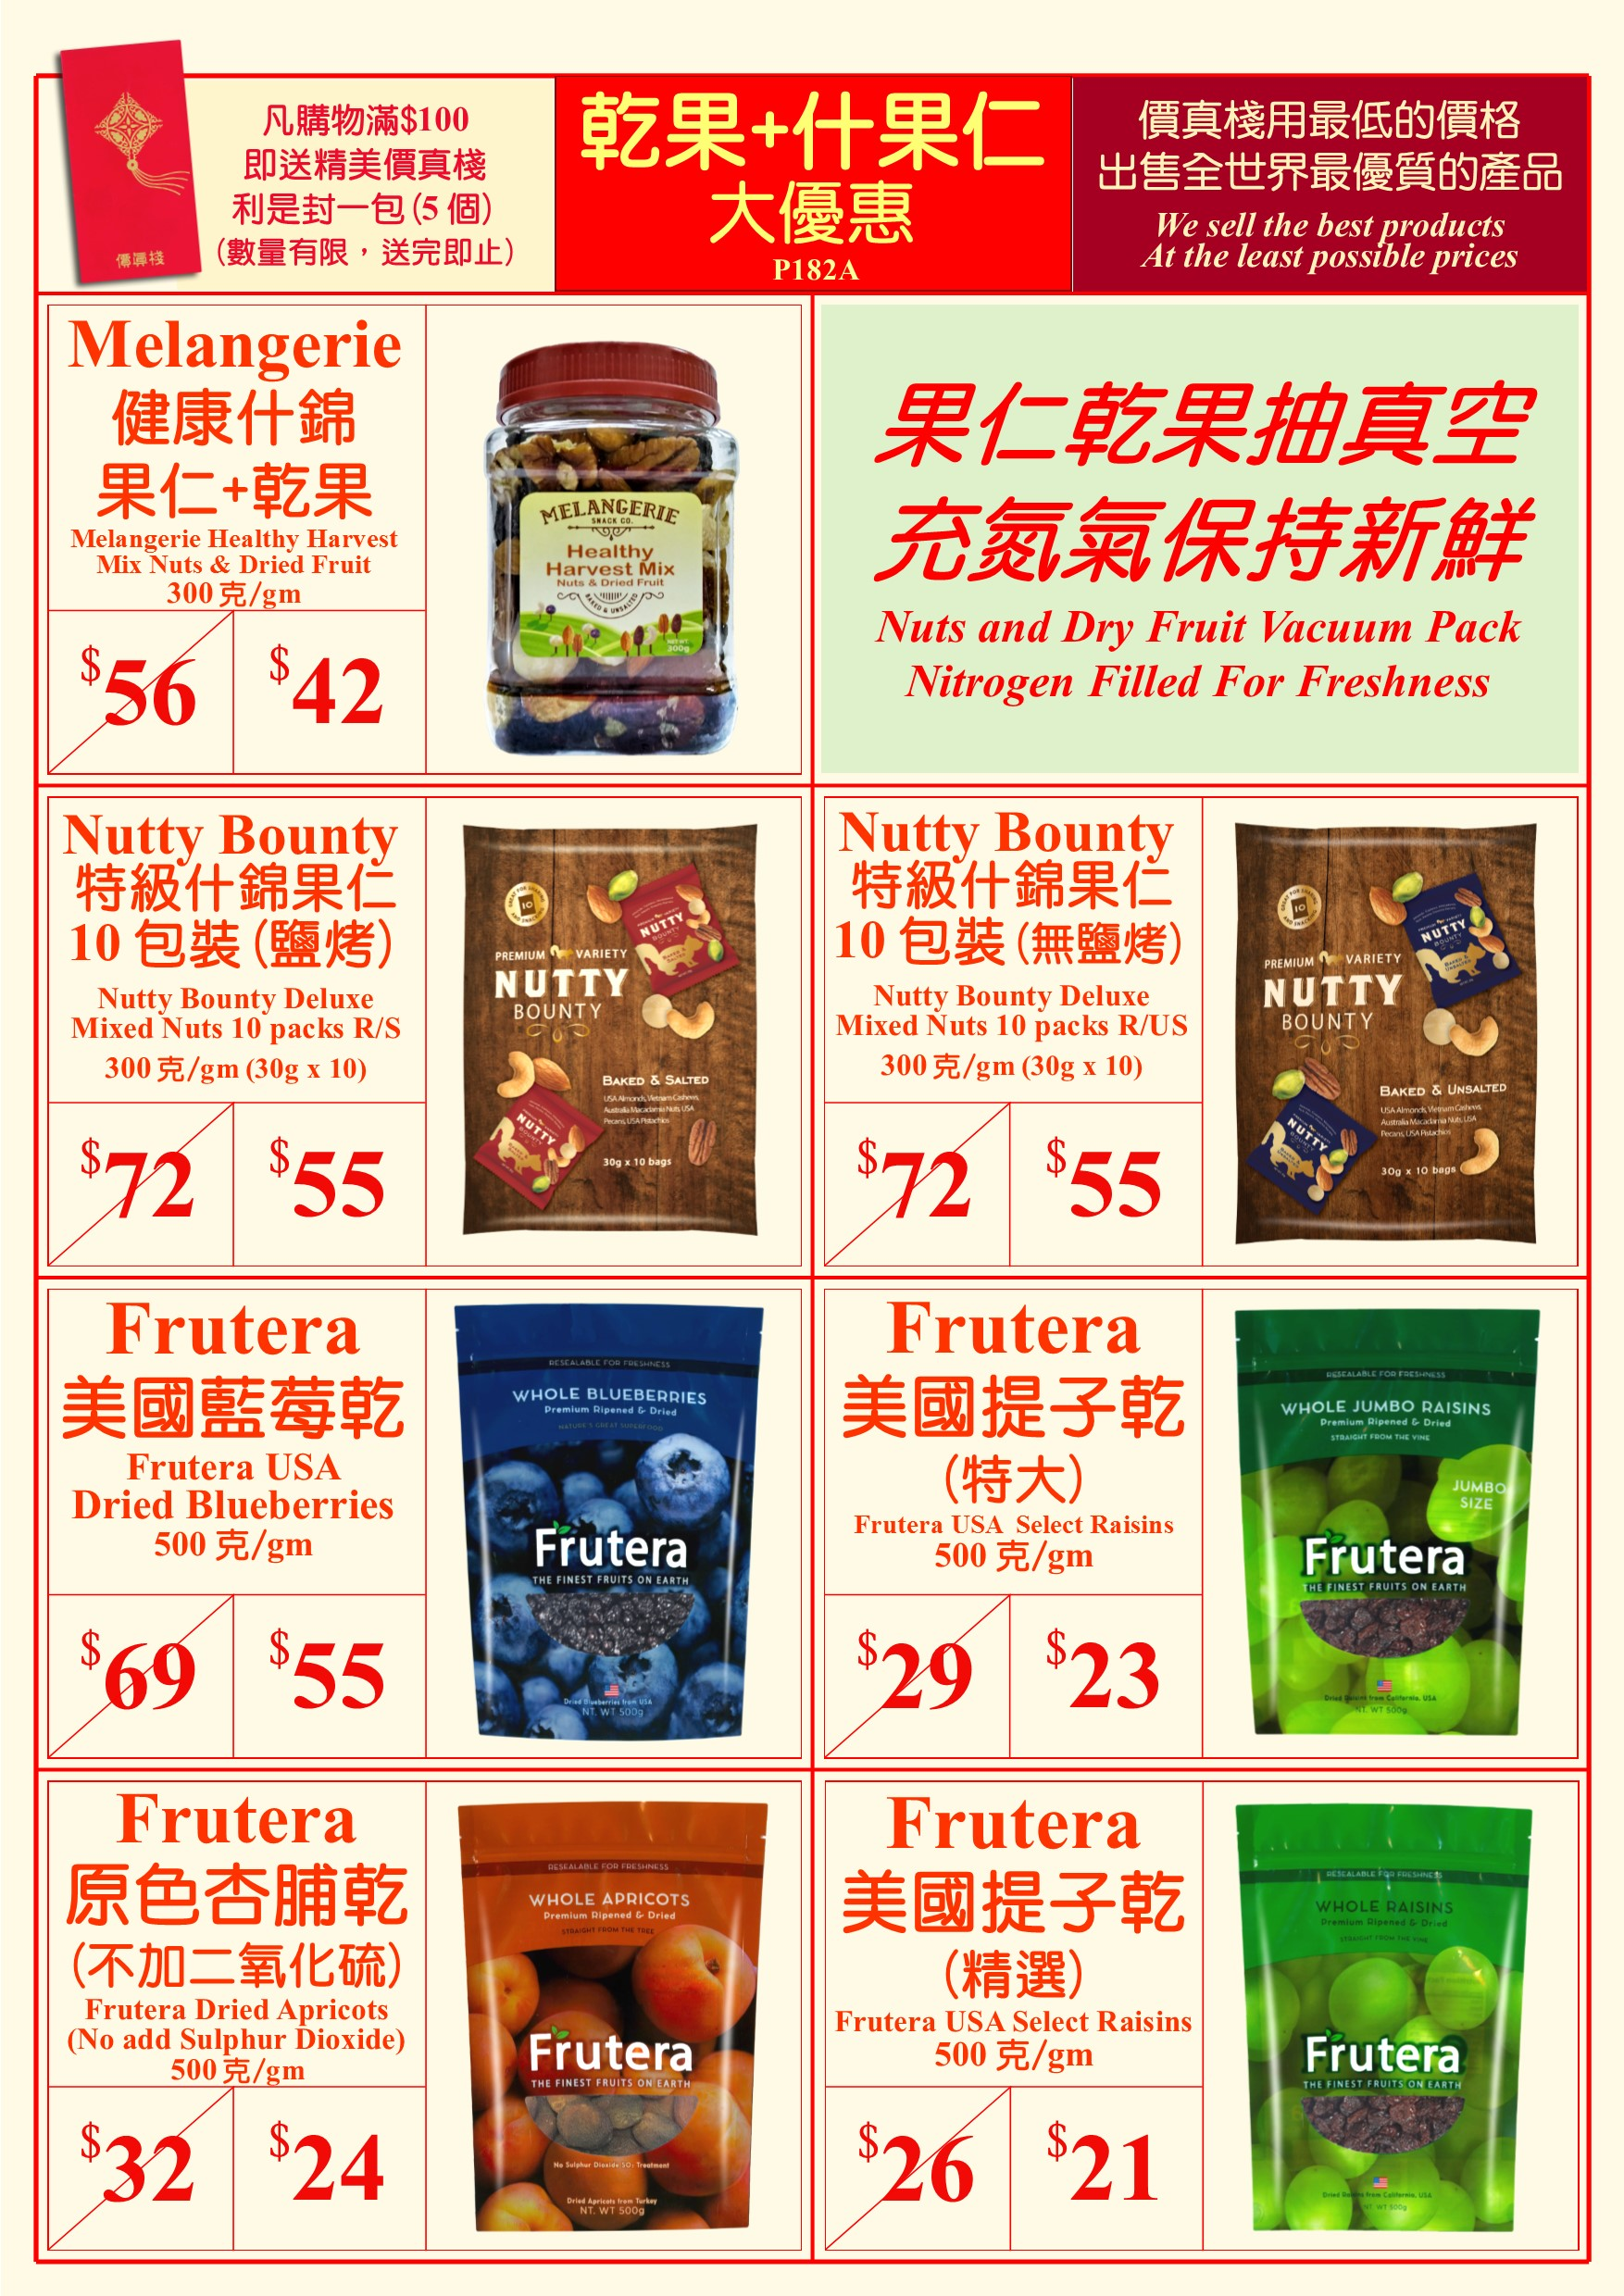 Dry Fruit + Mix Nuts Promotion